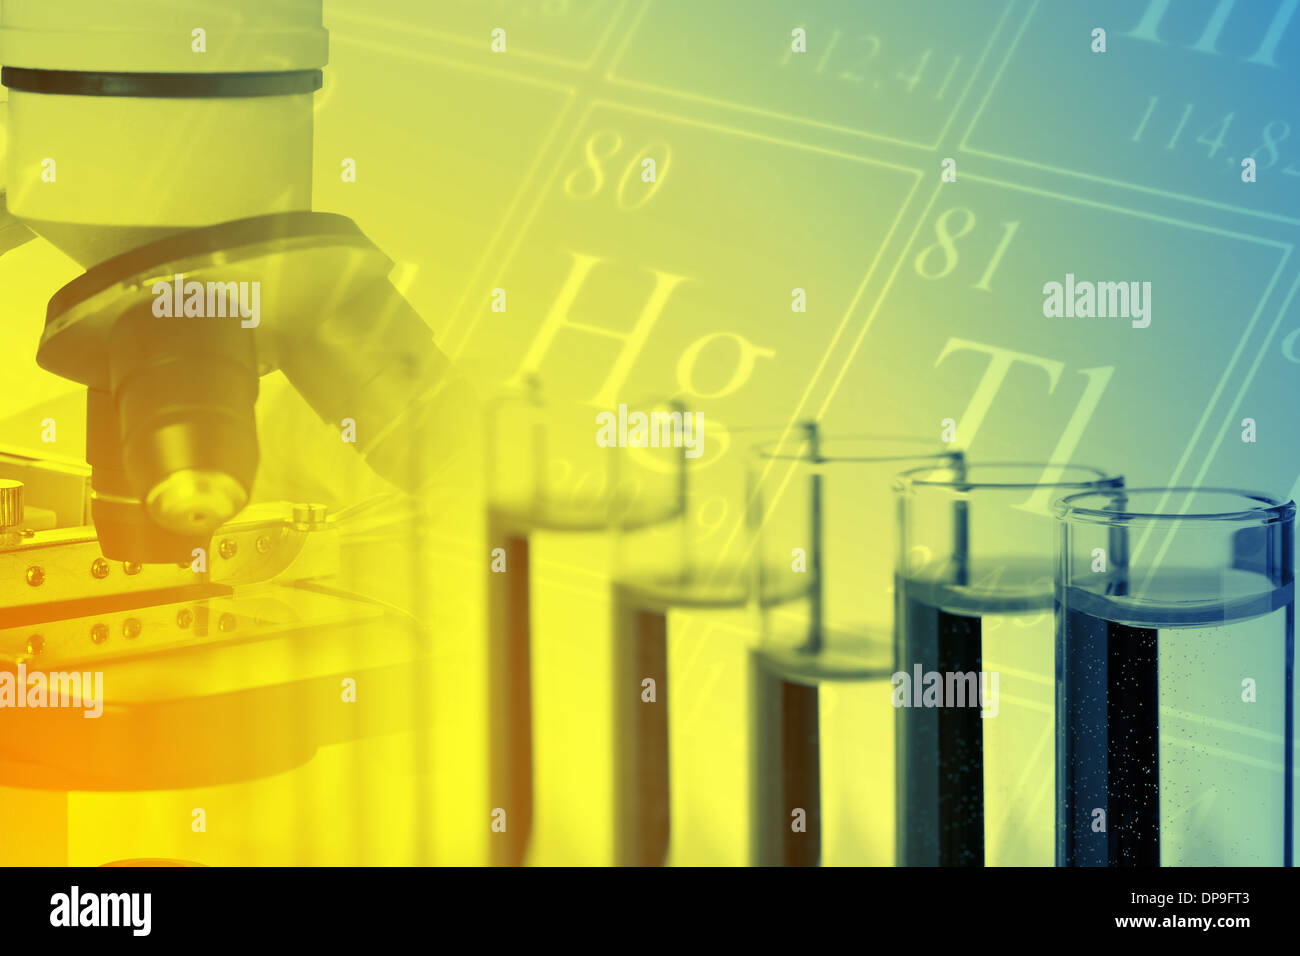 Test tubes with microscope and periodic system of the elements - chemistry or biology science background - Stock Image